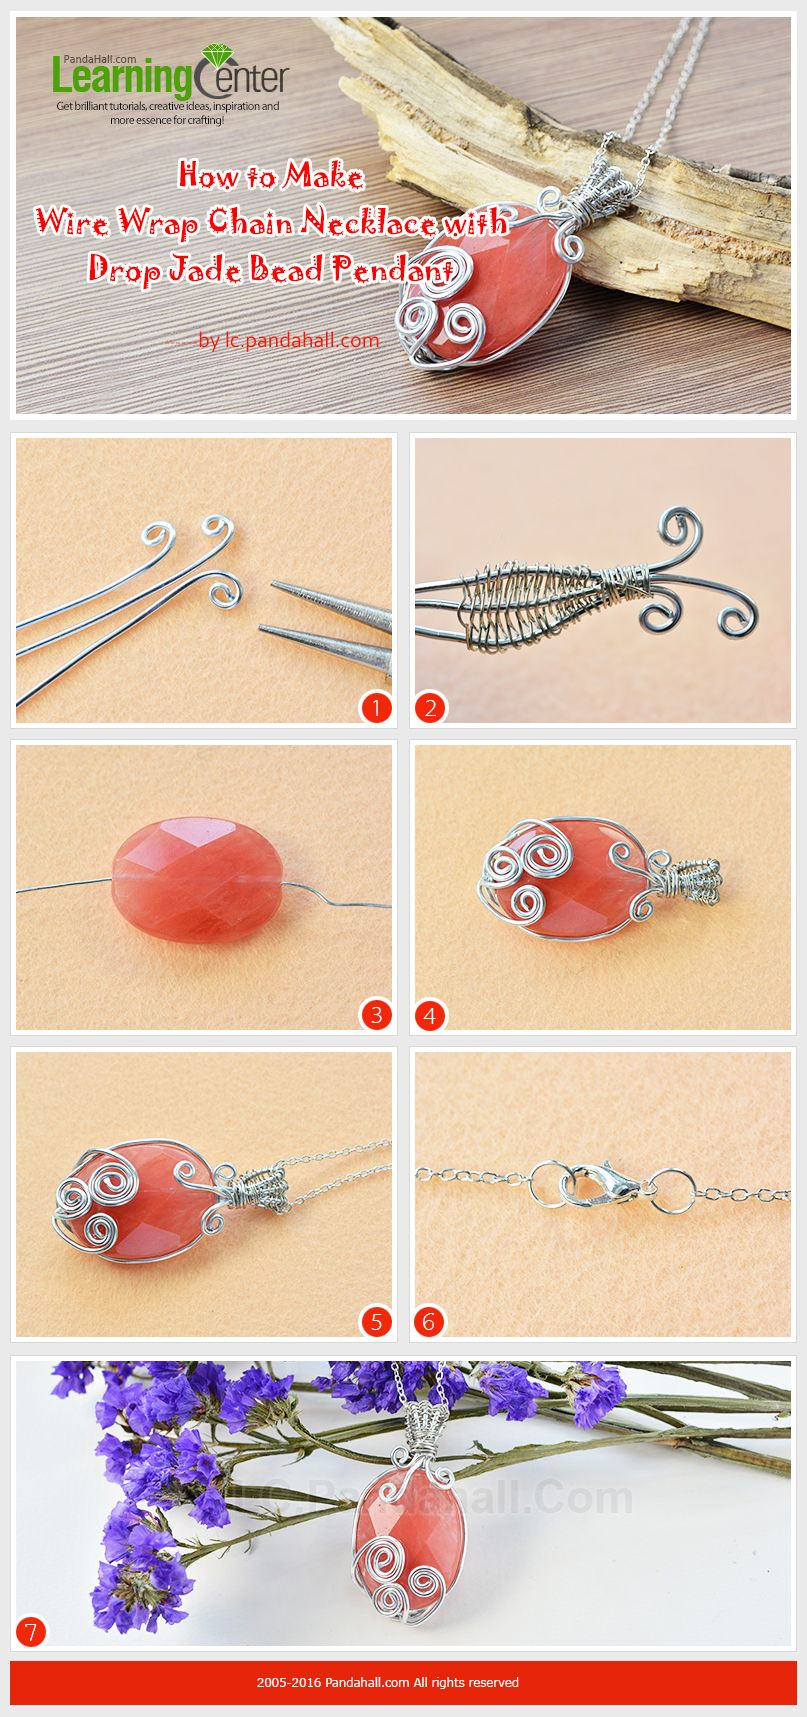 How to Make Wire Wrap Chain Necklace with Drop Jade Bead Pendant ...